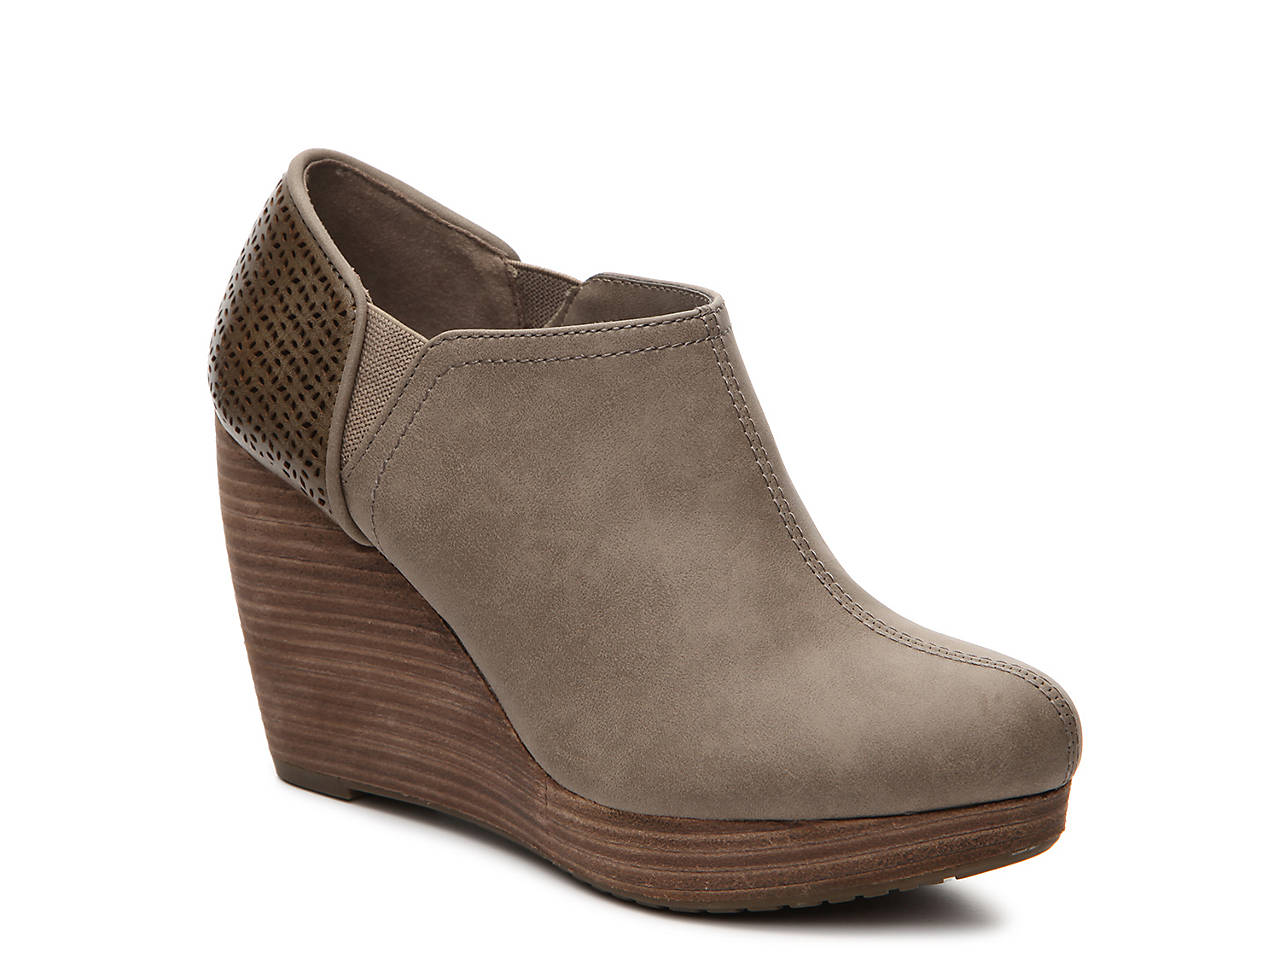 edf3bdcb499f Dr. Scholl s Harlow Wedge Bootie Women s Shoes